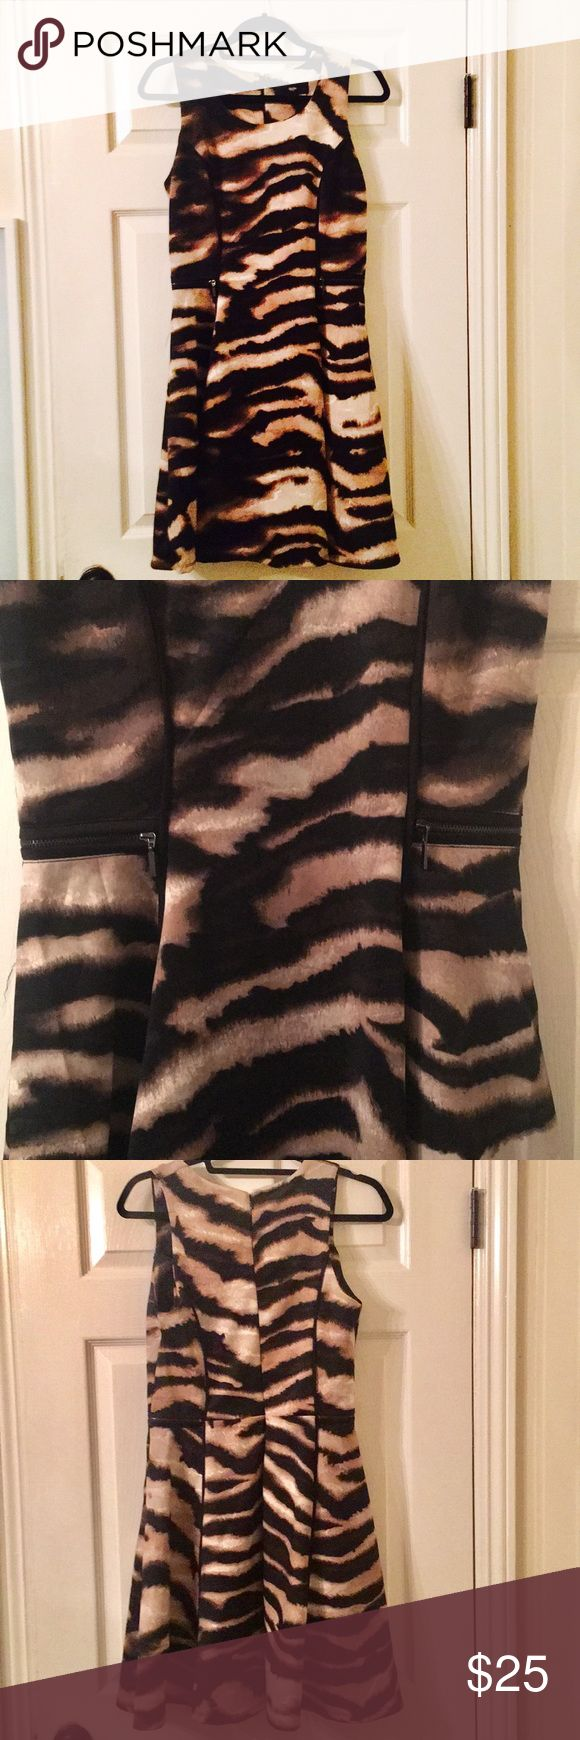 MOSSIMO Gorgeous Animal Print Dress MOSSIMO Animal Print Sleeveless Dress for Work/Evening/Cocktails with beautiful shades of Brown, Black and Cream. Knee length. Only wore it once. Mossimo Supply Co Dresses Mini